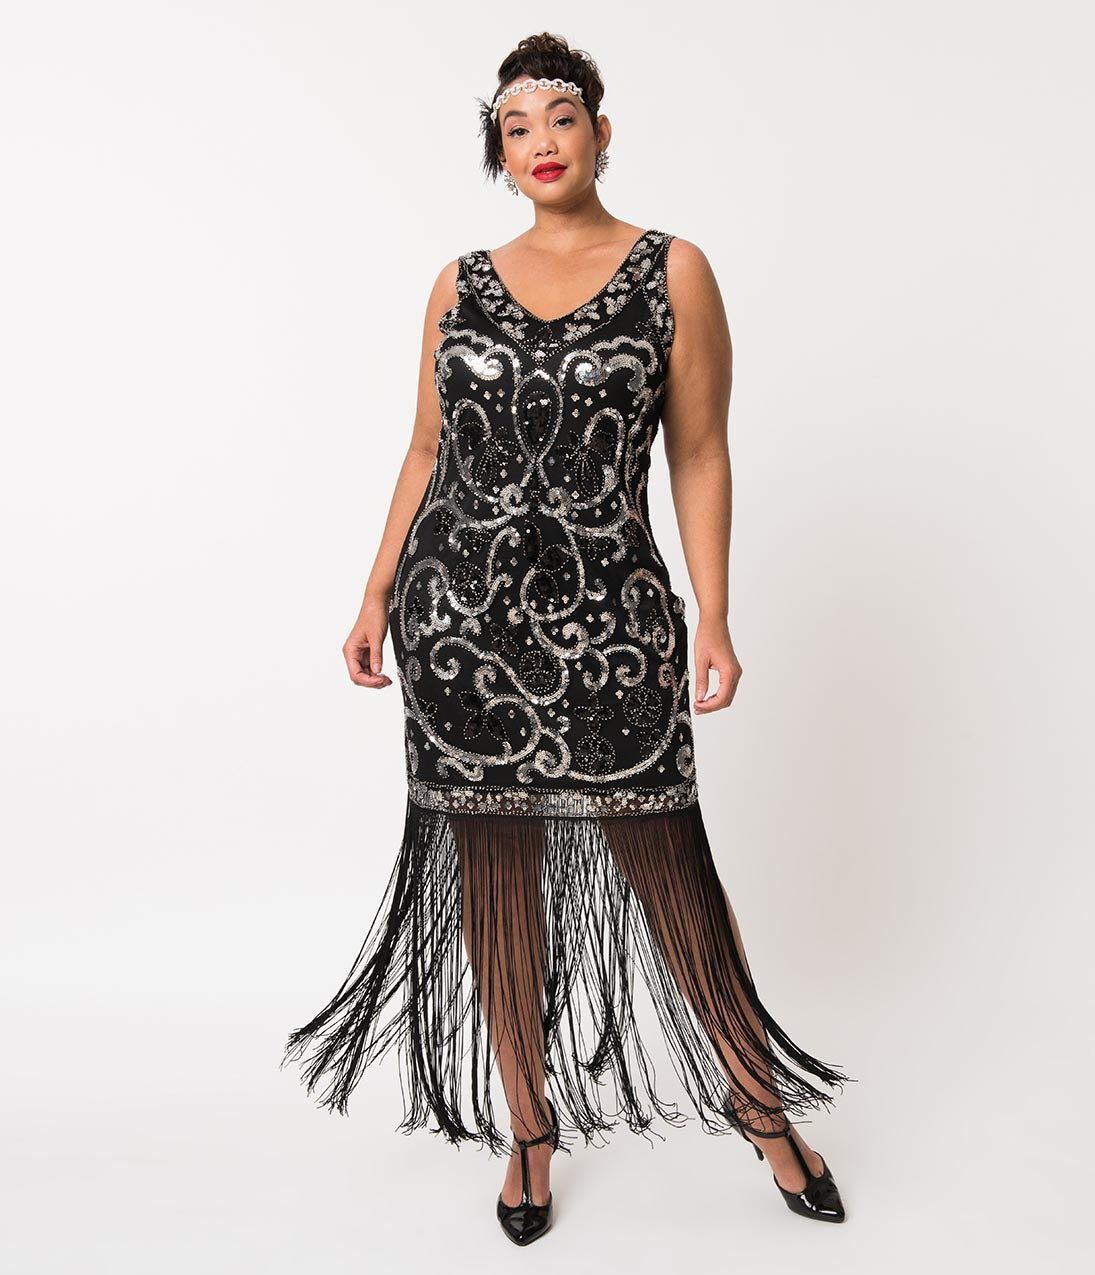 Downton Abbey Inspired Dresses Unique Vintage Plus Size Black  Silver Sequin St. Michel Fringe Flapper Dress $59.00 AT vintagedancer.com